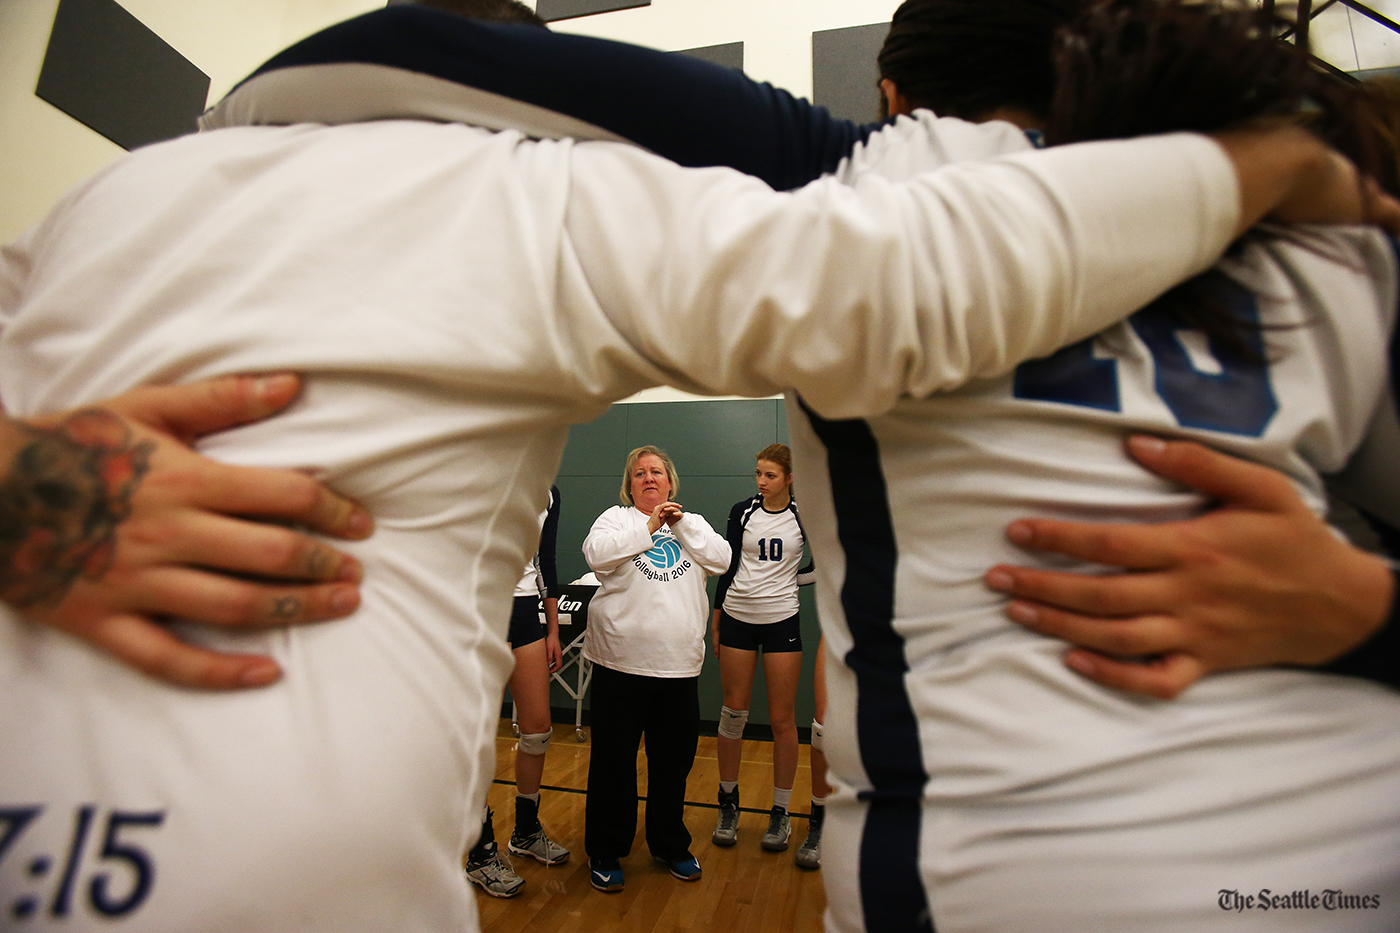 Auburn Riverside assistant coach Stazi Edmonds talks to the team prior to their West Central District volleyball semifinal game against the Payallup Vikings held at Kentwood High School on Saturday, November 5, 2016.